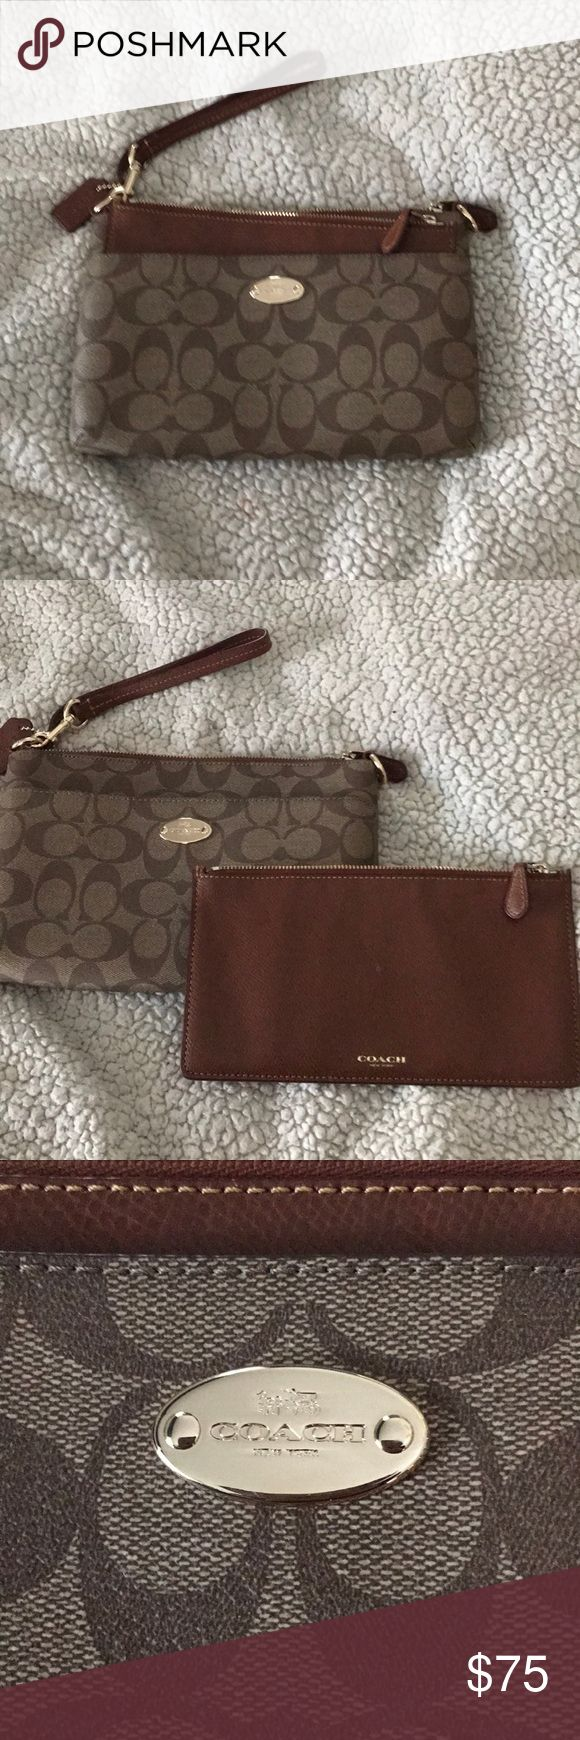 Coach Clutch Practically new coach clutch, used once or twice in great condition!!!! Removable pouch included! MAKE AN OFFER!!!! Coach Bags Clutches & Wristlets